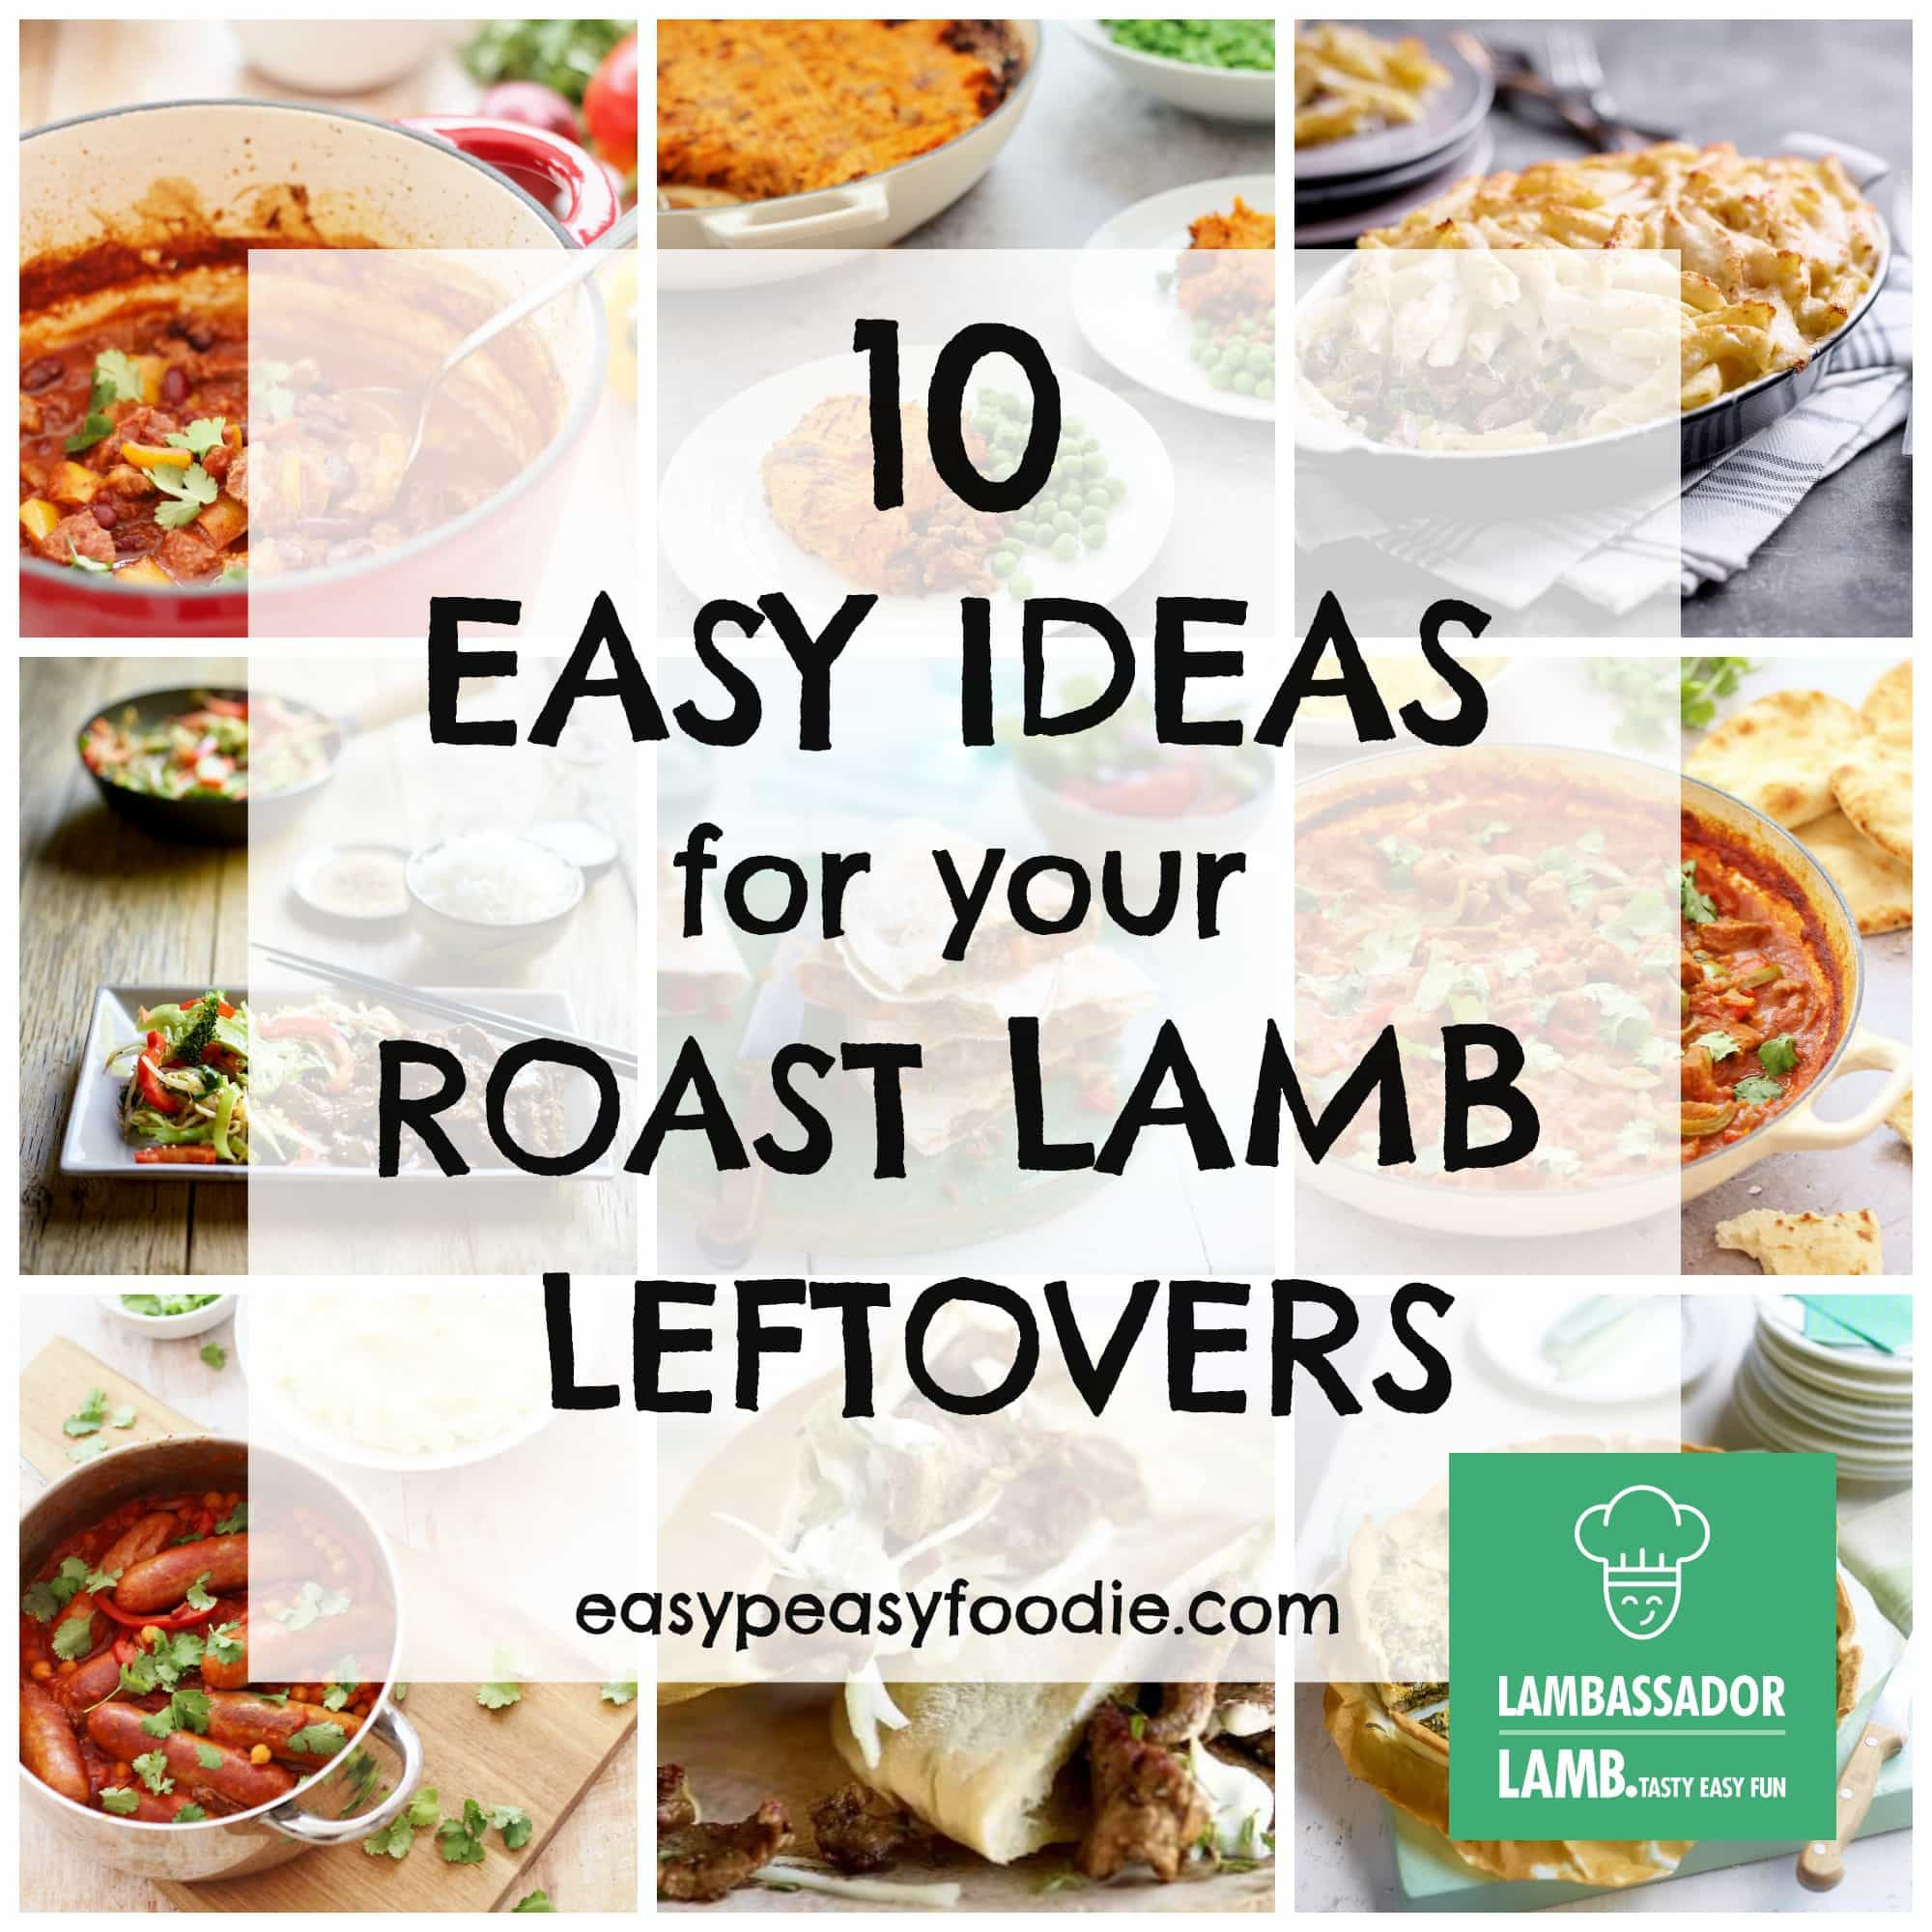 Top 10 Tips for Handling Leftovers